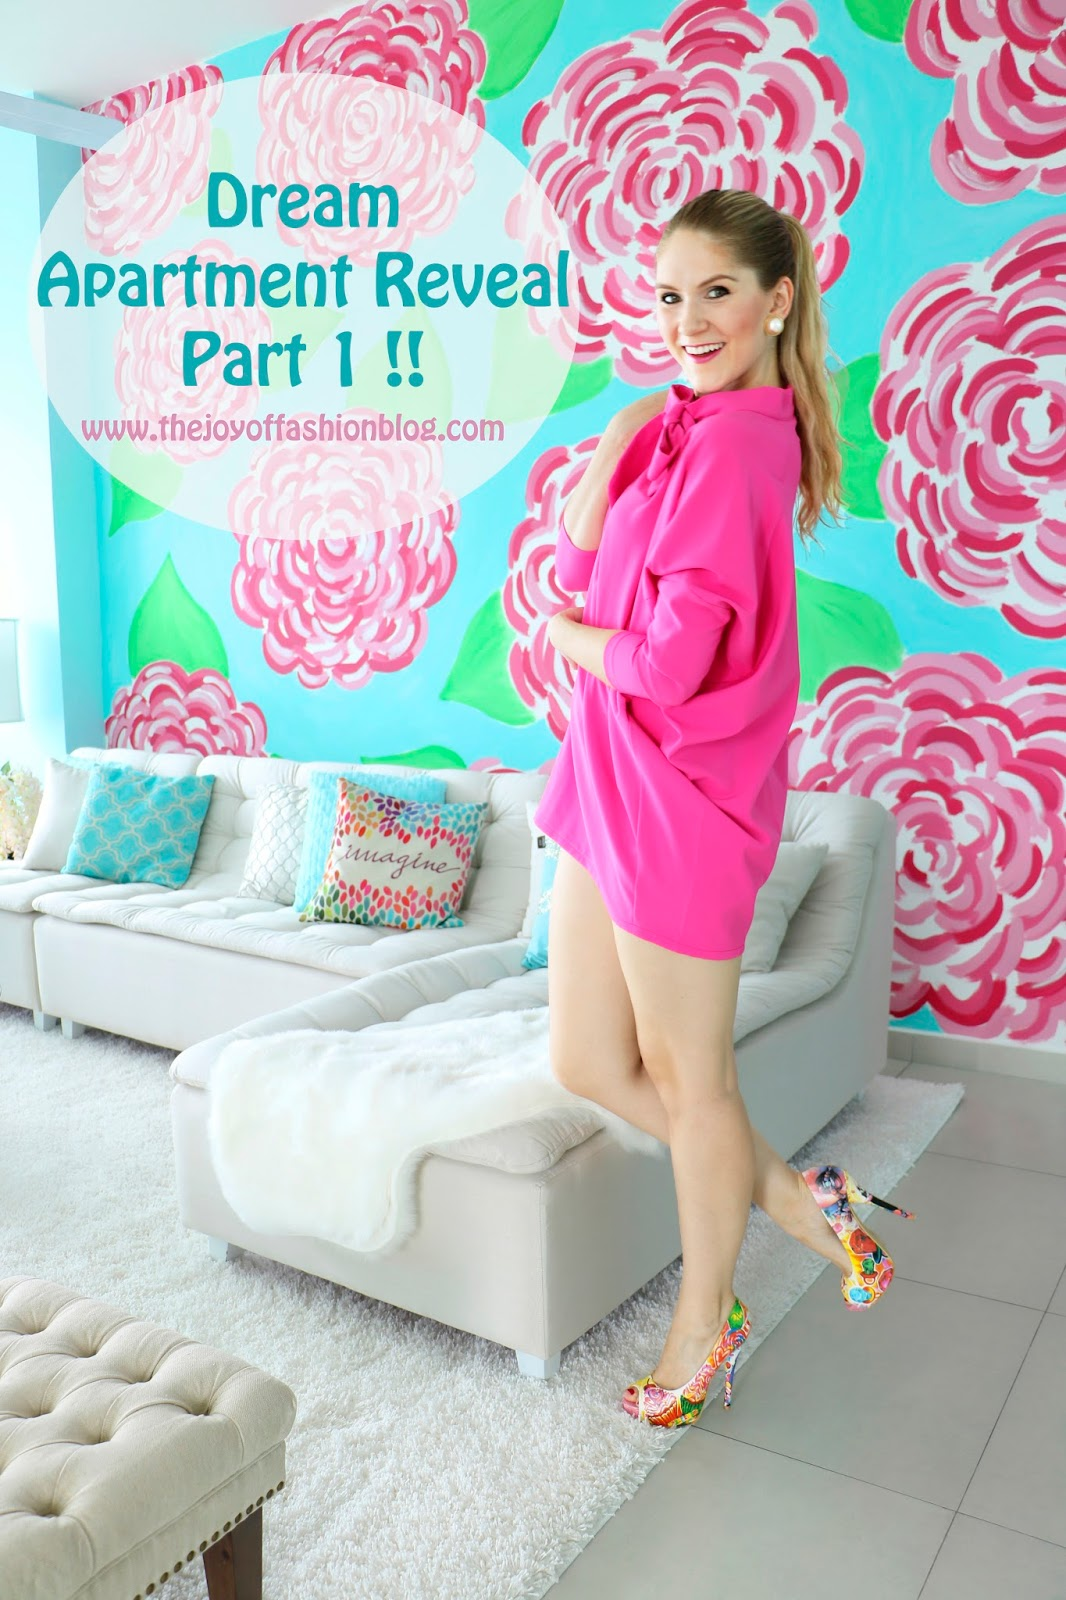 Ever wonder what a blogger's home looks like? Click through to find out!